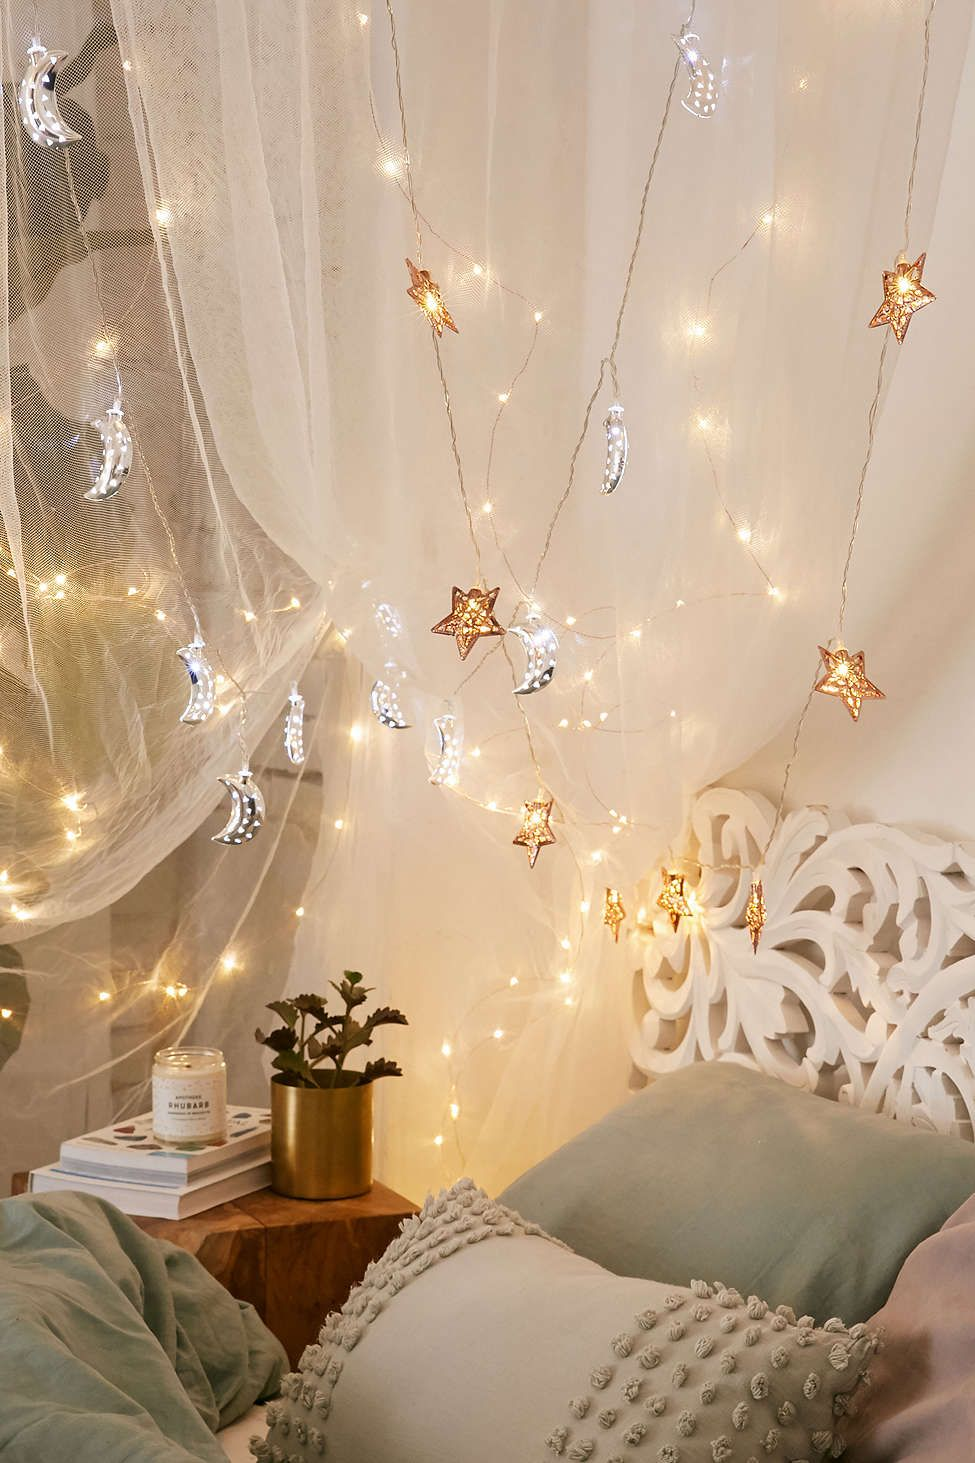 How To Hang String Lights From Ceiling Simple Copper Star String Lights  Pinterest  Star String Lights Urban Decorating Inspiration